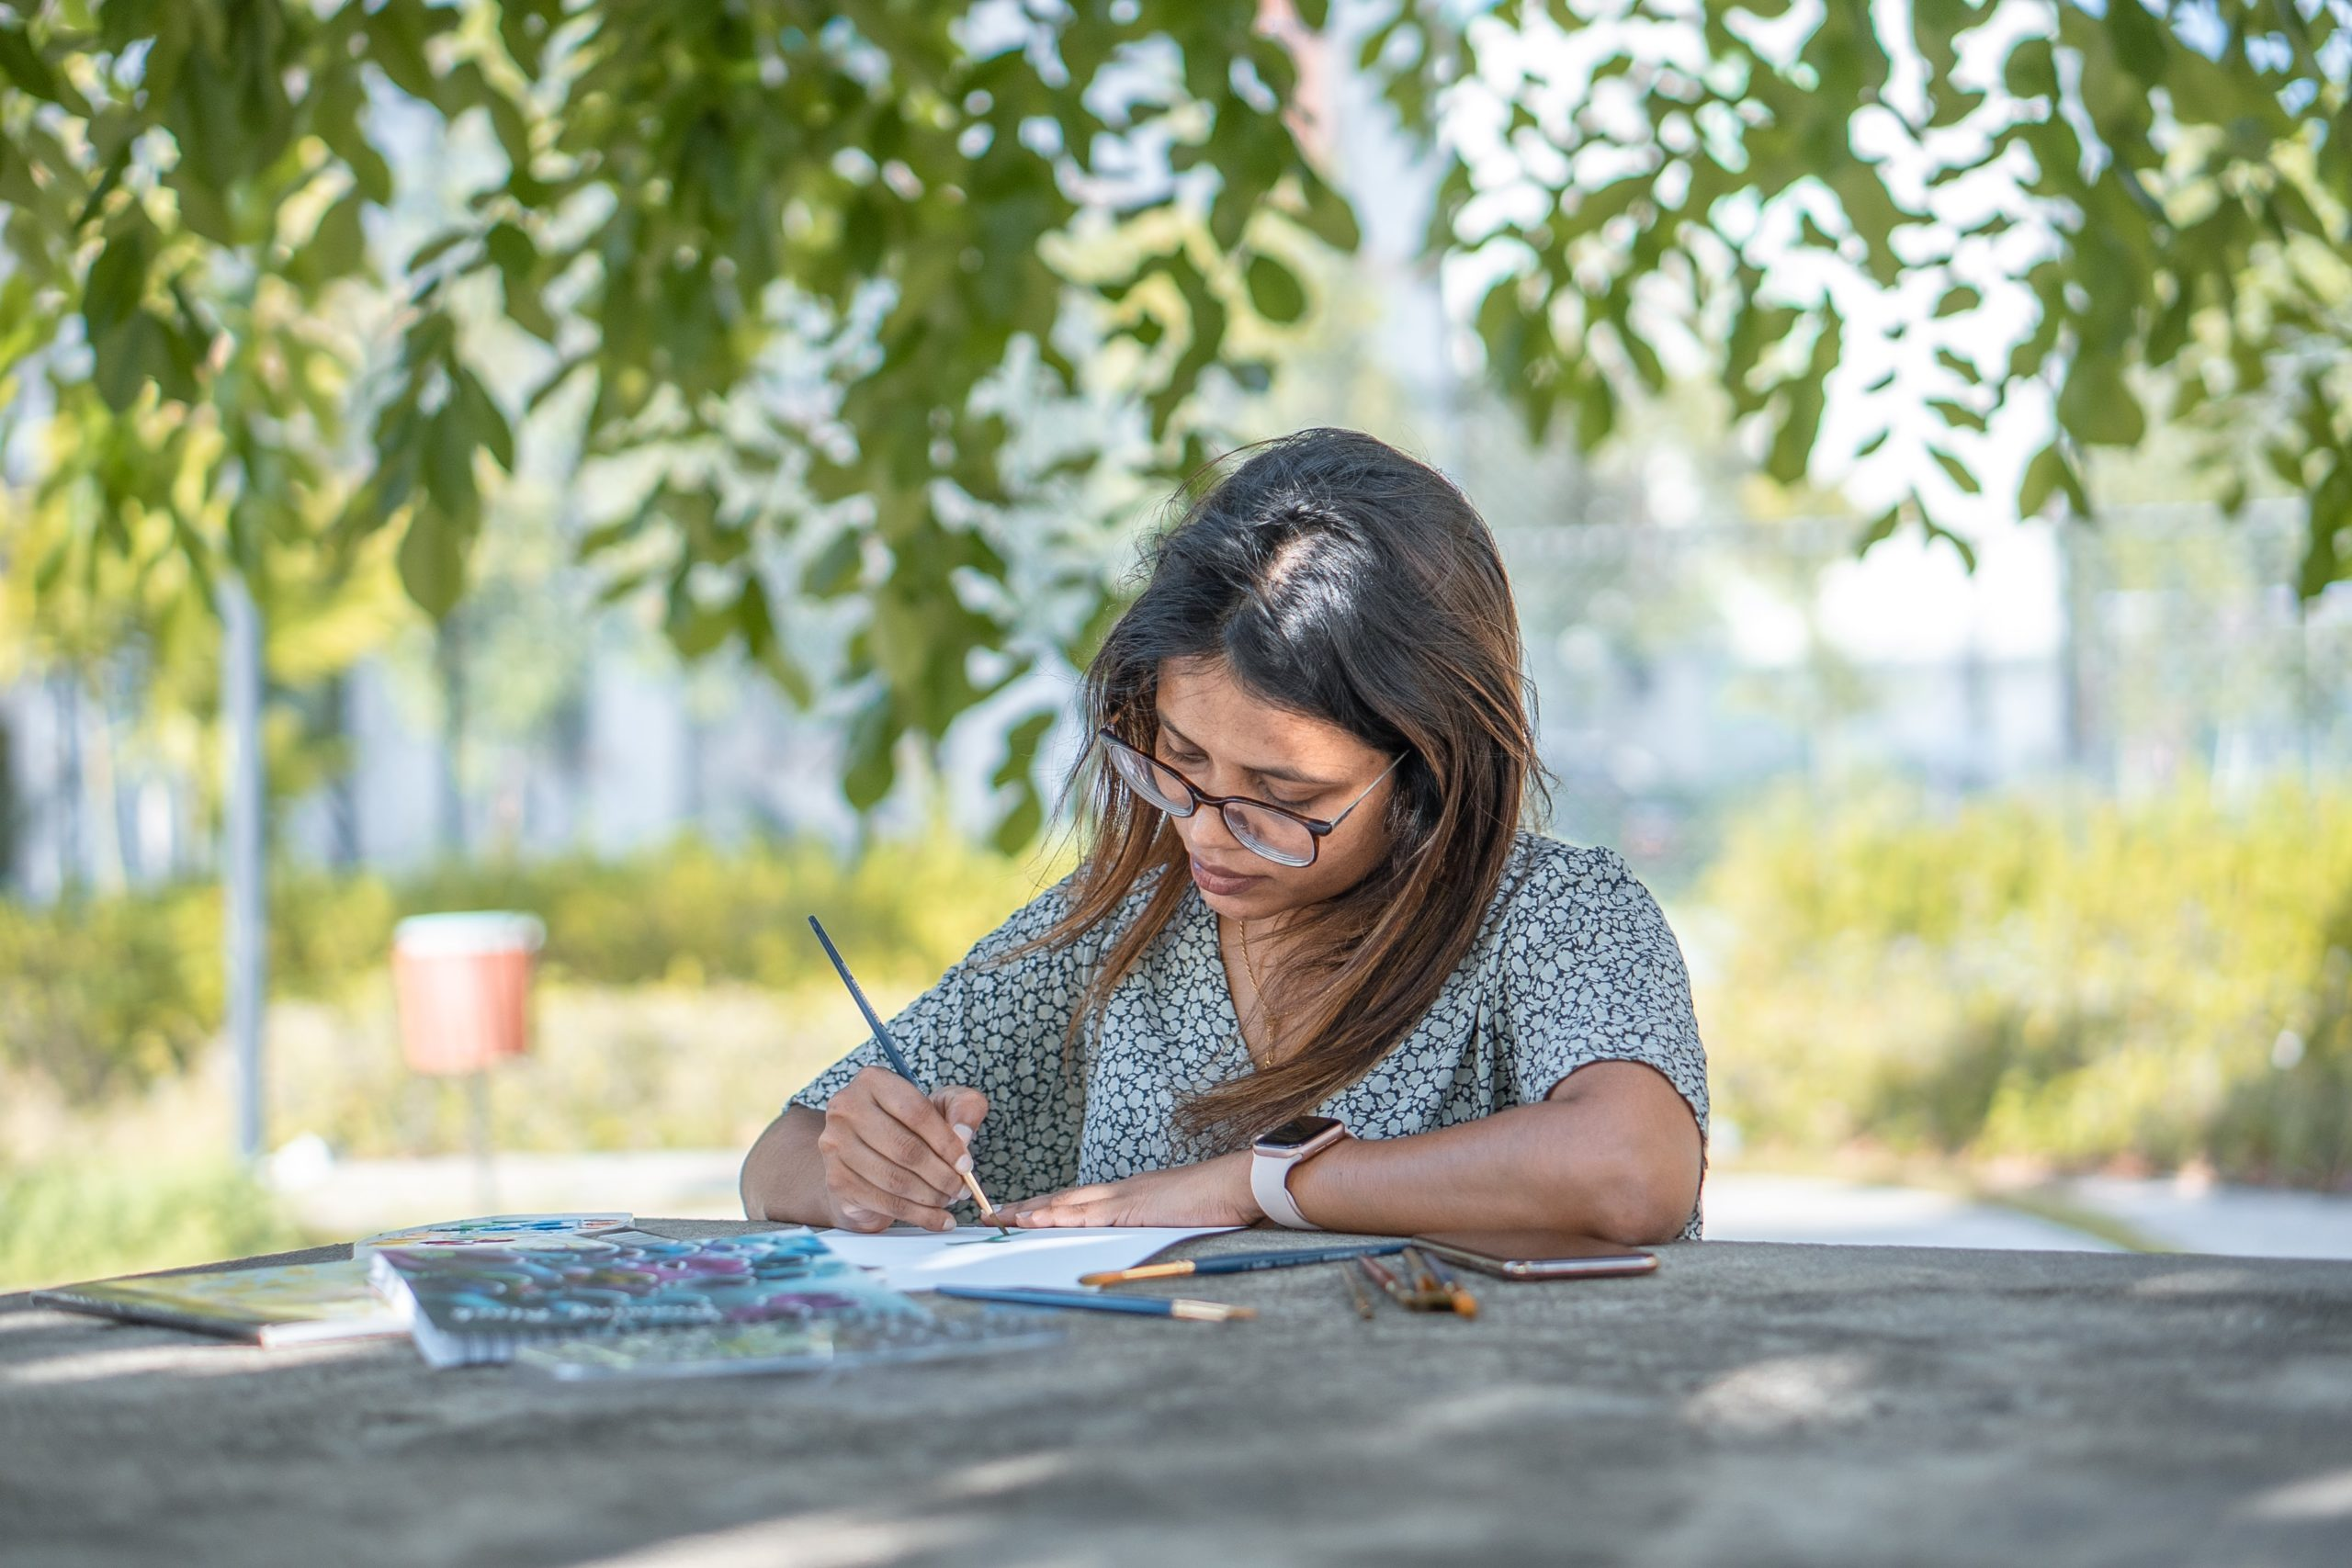 A woman with dark hair and glasses looks closely at the open book in front of her, pen poised to write. She is sitting outside and is surrounded by green leaves.